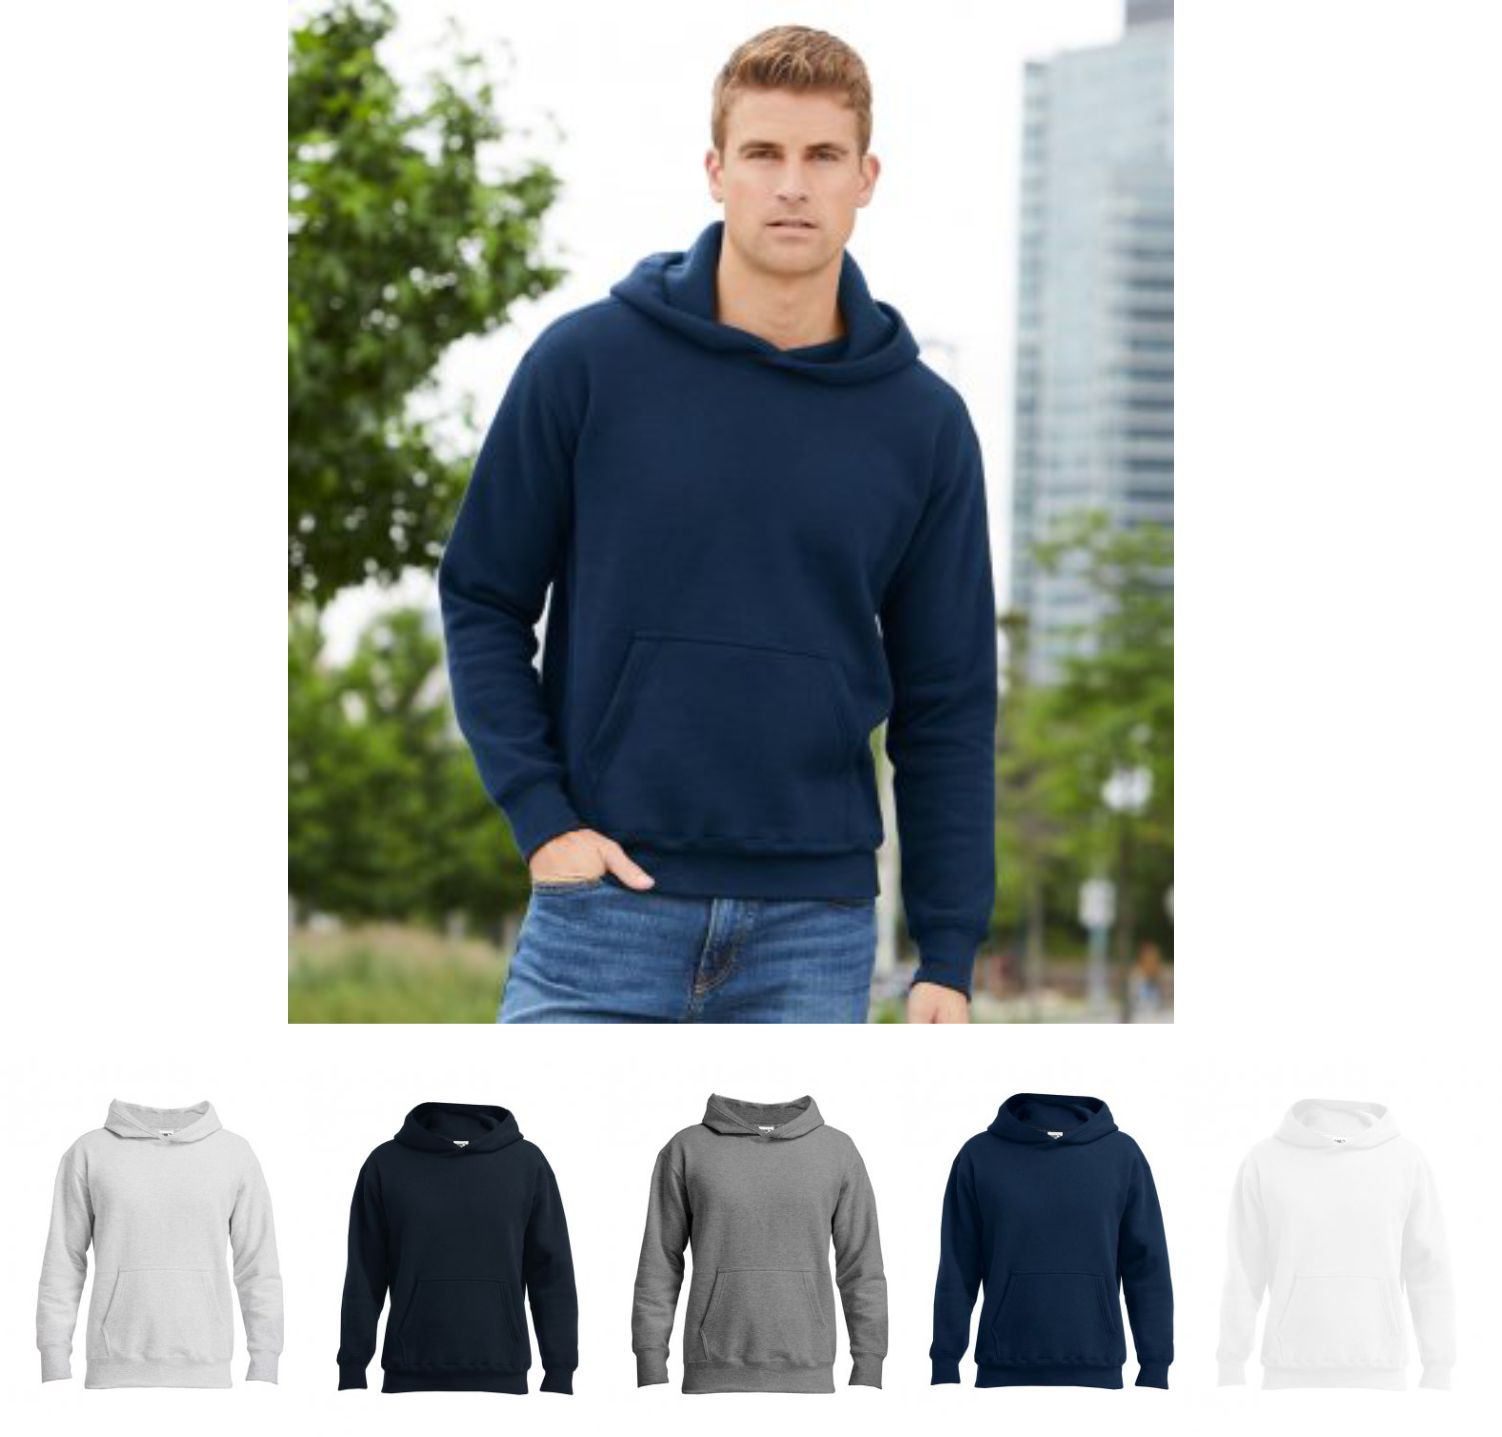 GH062 Gildan Hammer Hooded Sweatshirt